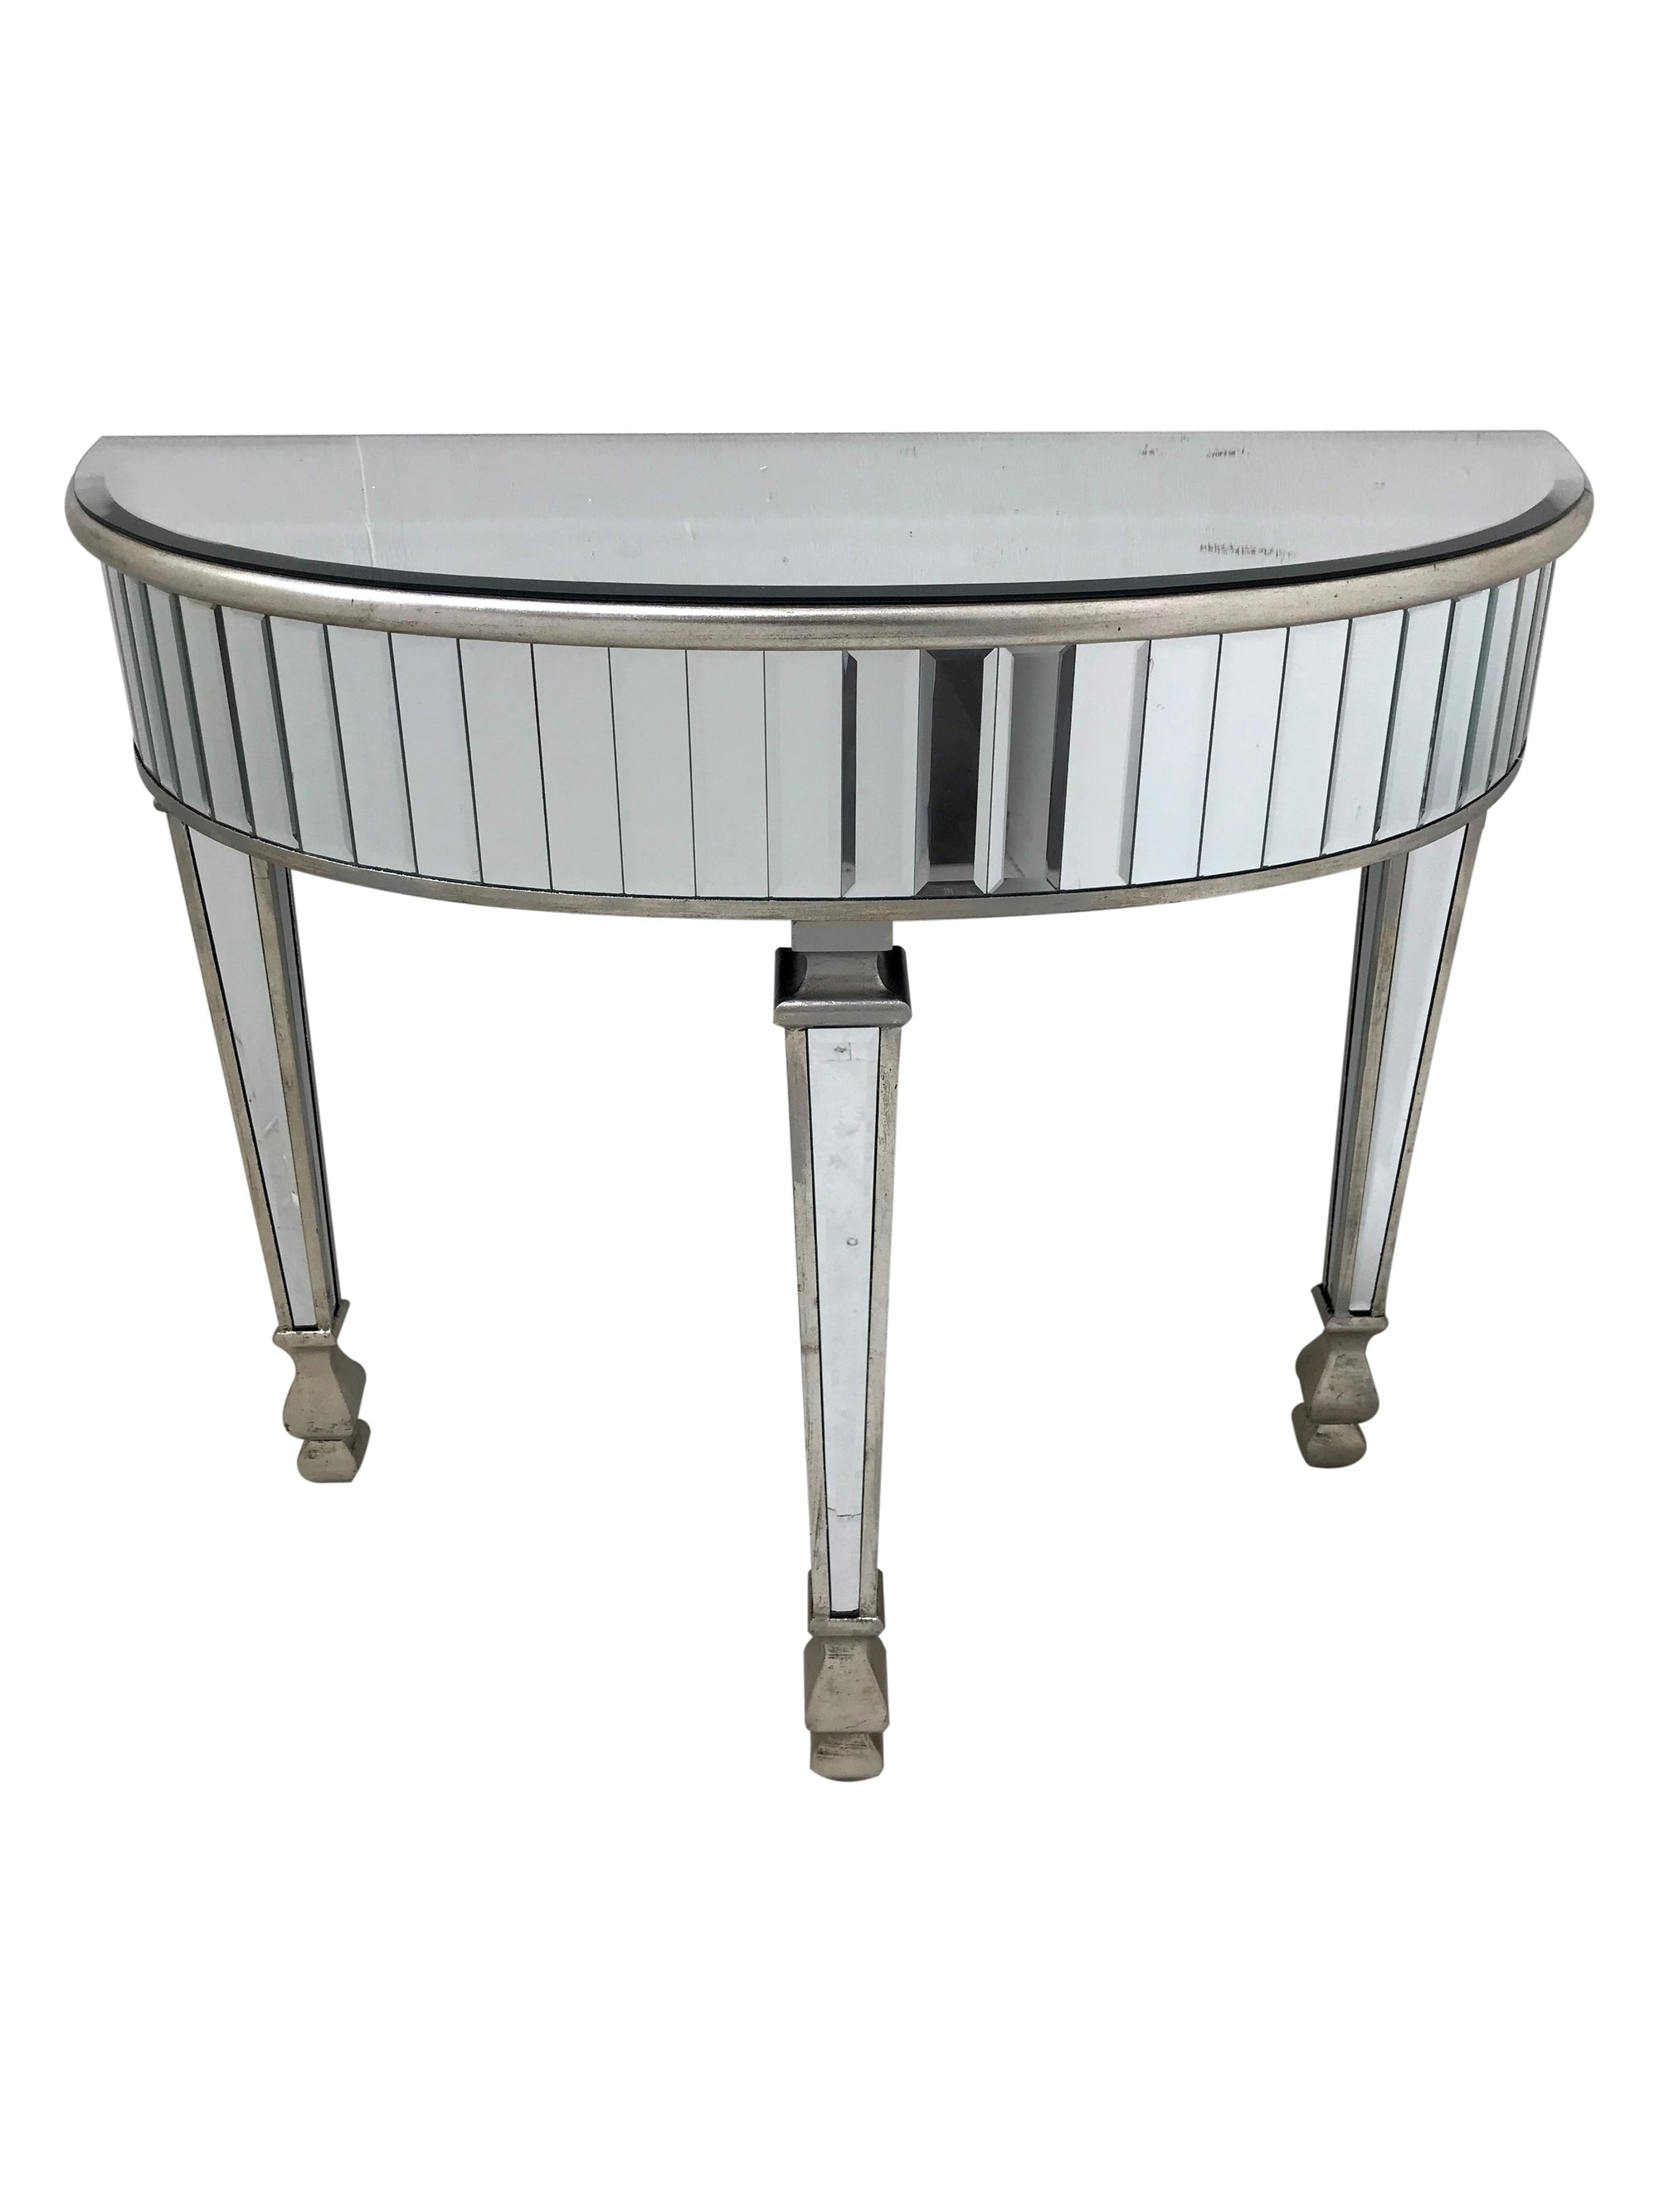 New York Range Mirrored Console Table, half-moon shape, rounded, mirrored strips, bevelled mirror top, antiqued silver finish